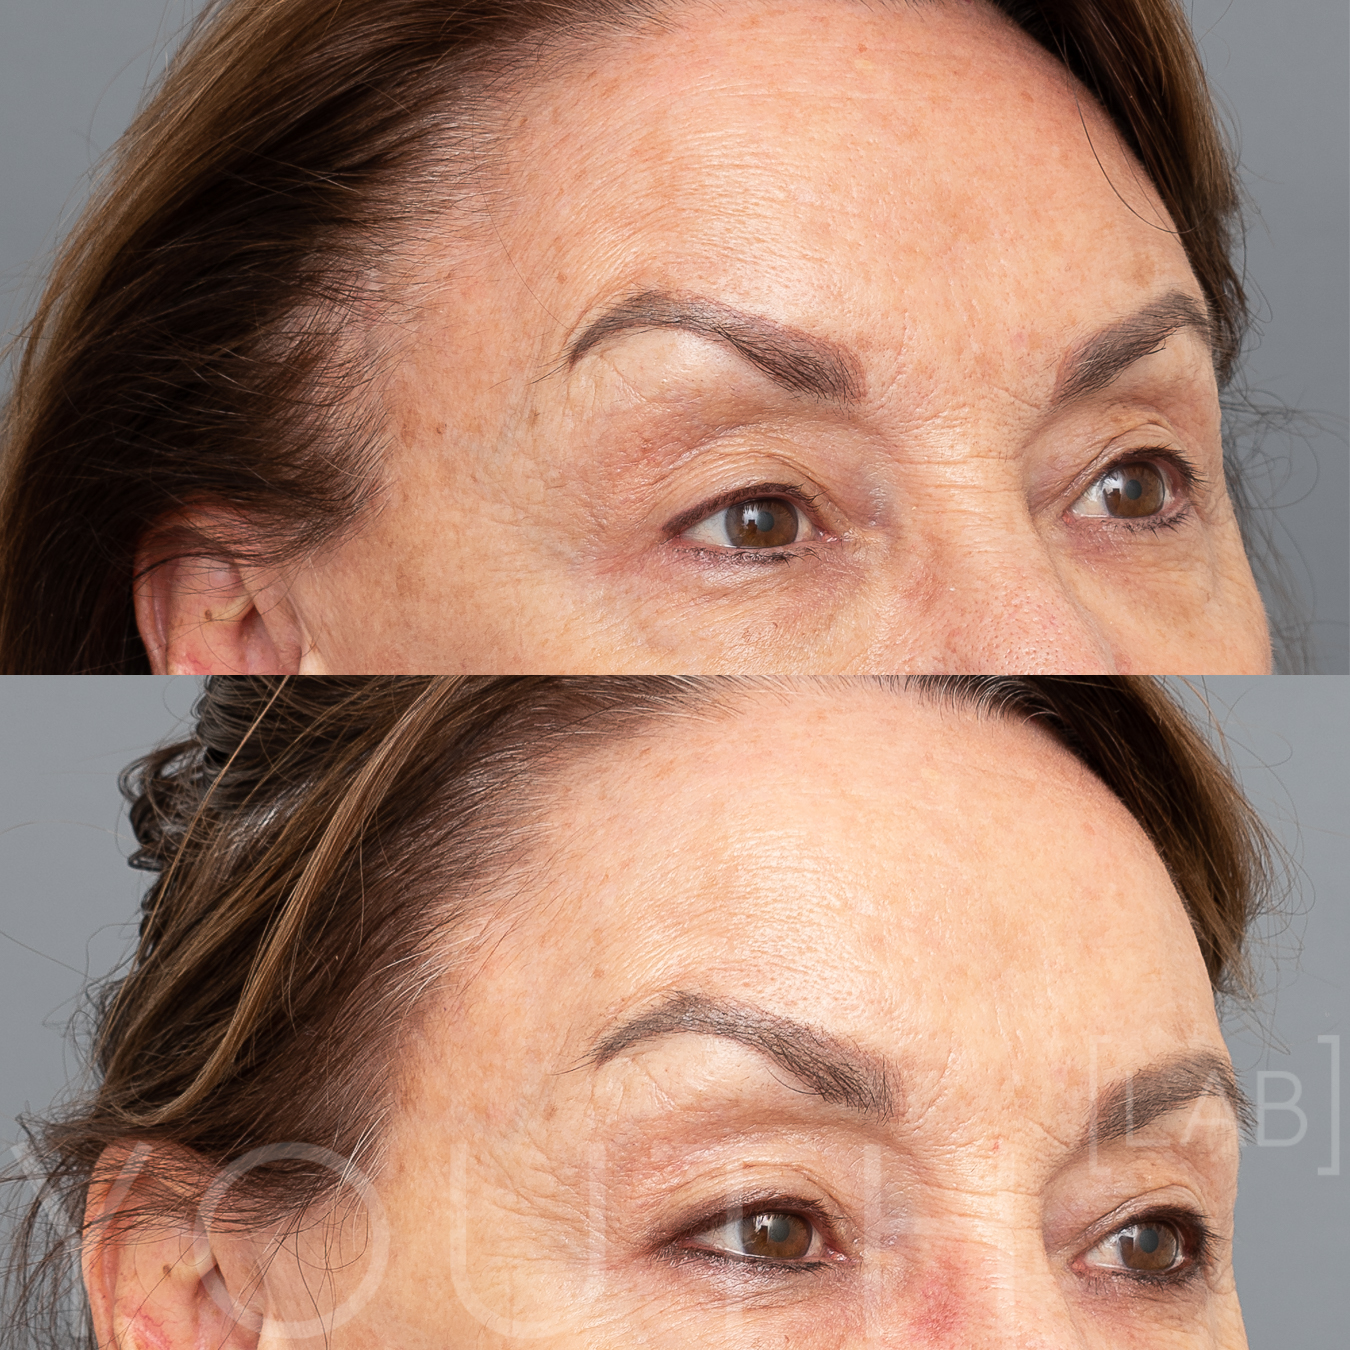 BBL Photorejuvenation - 4 weeks post    1 treatment. Raw image.